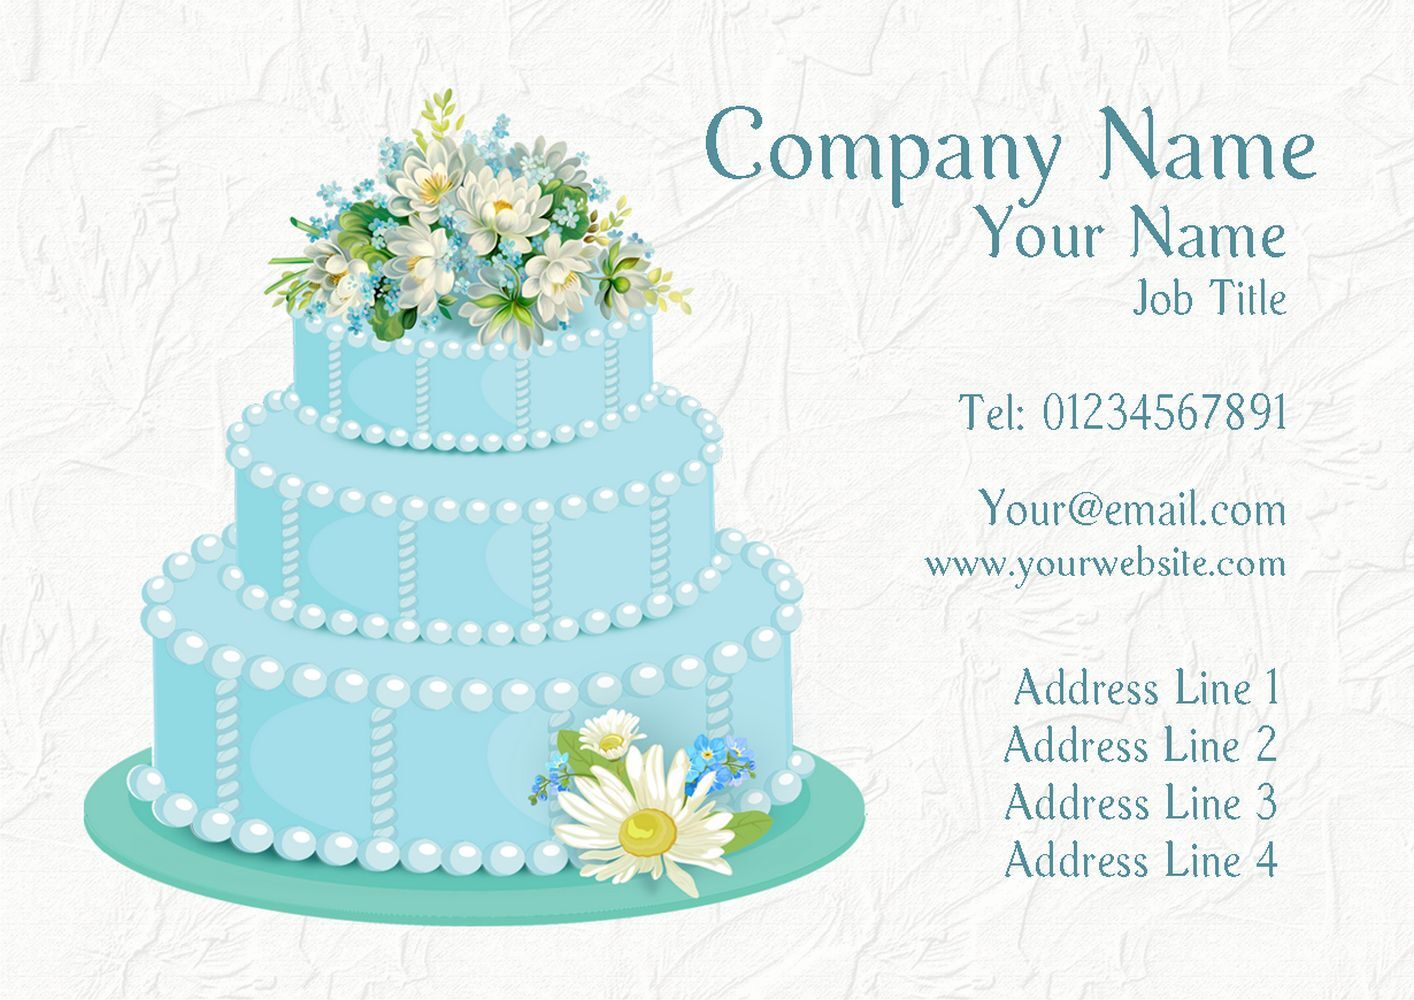 Blau Cake Personalised Business Cards